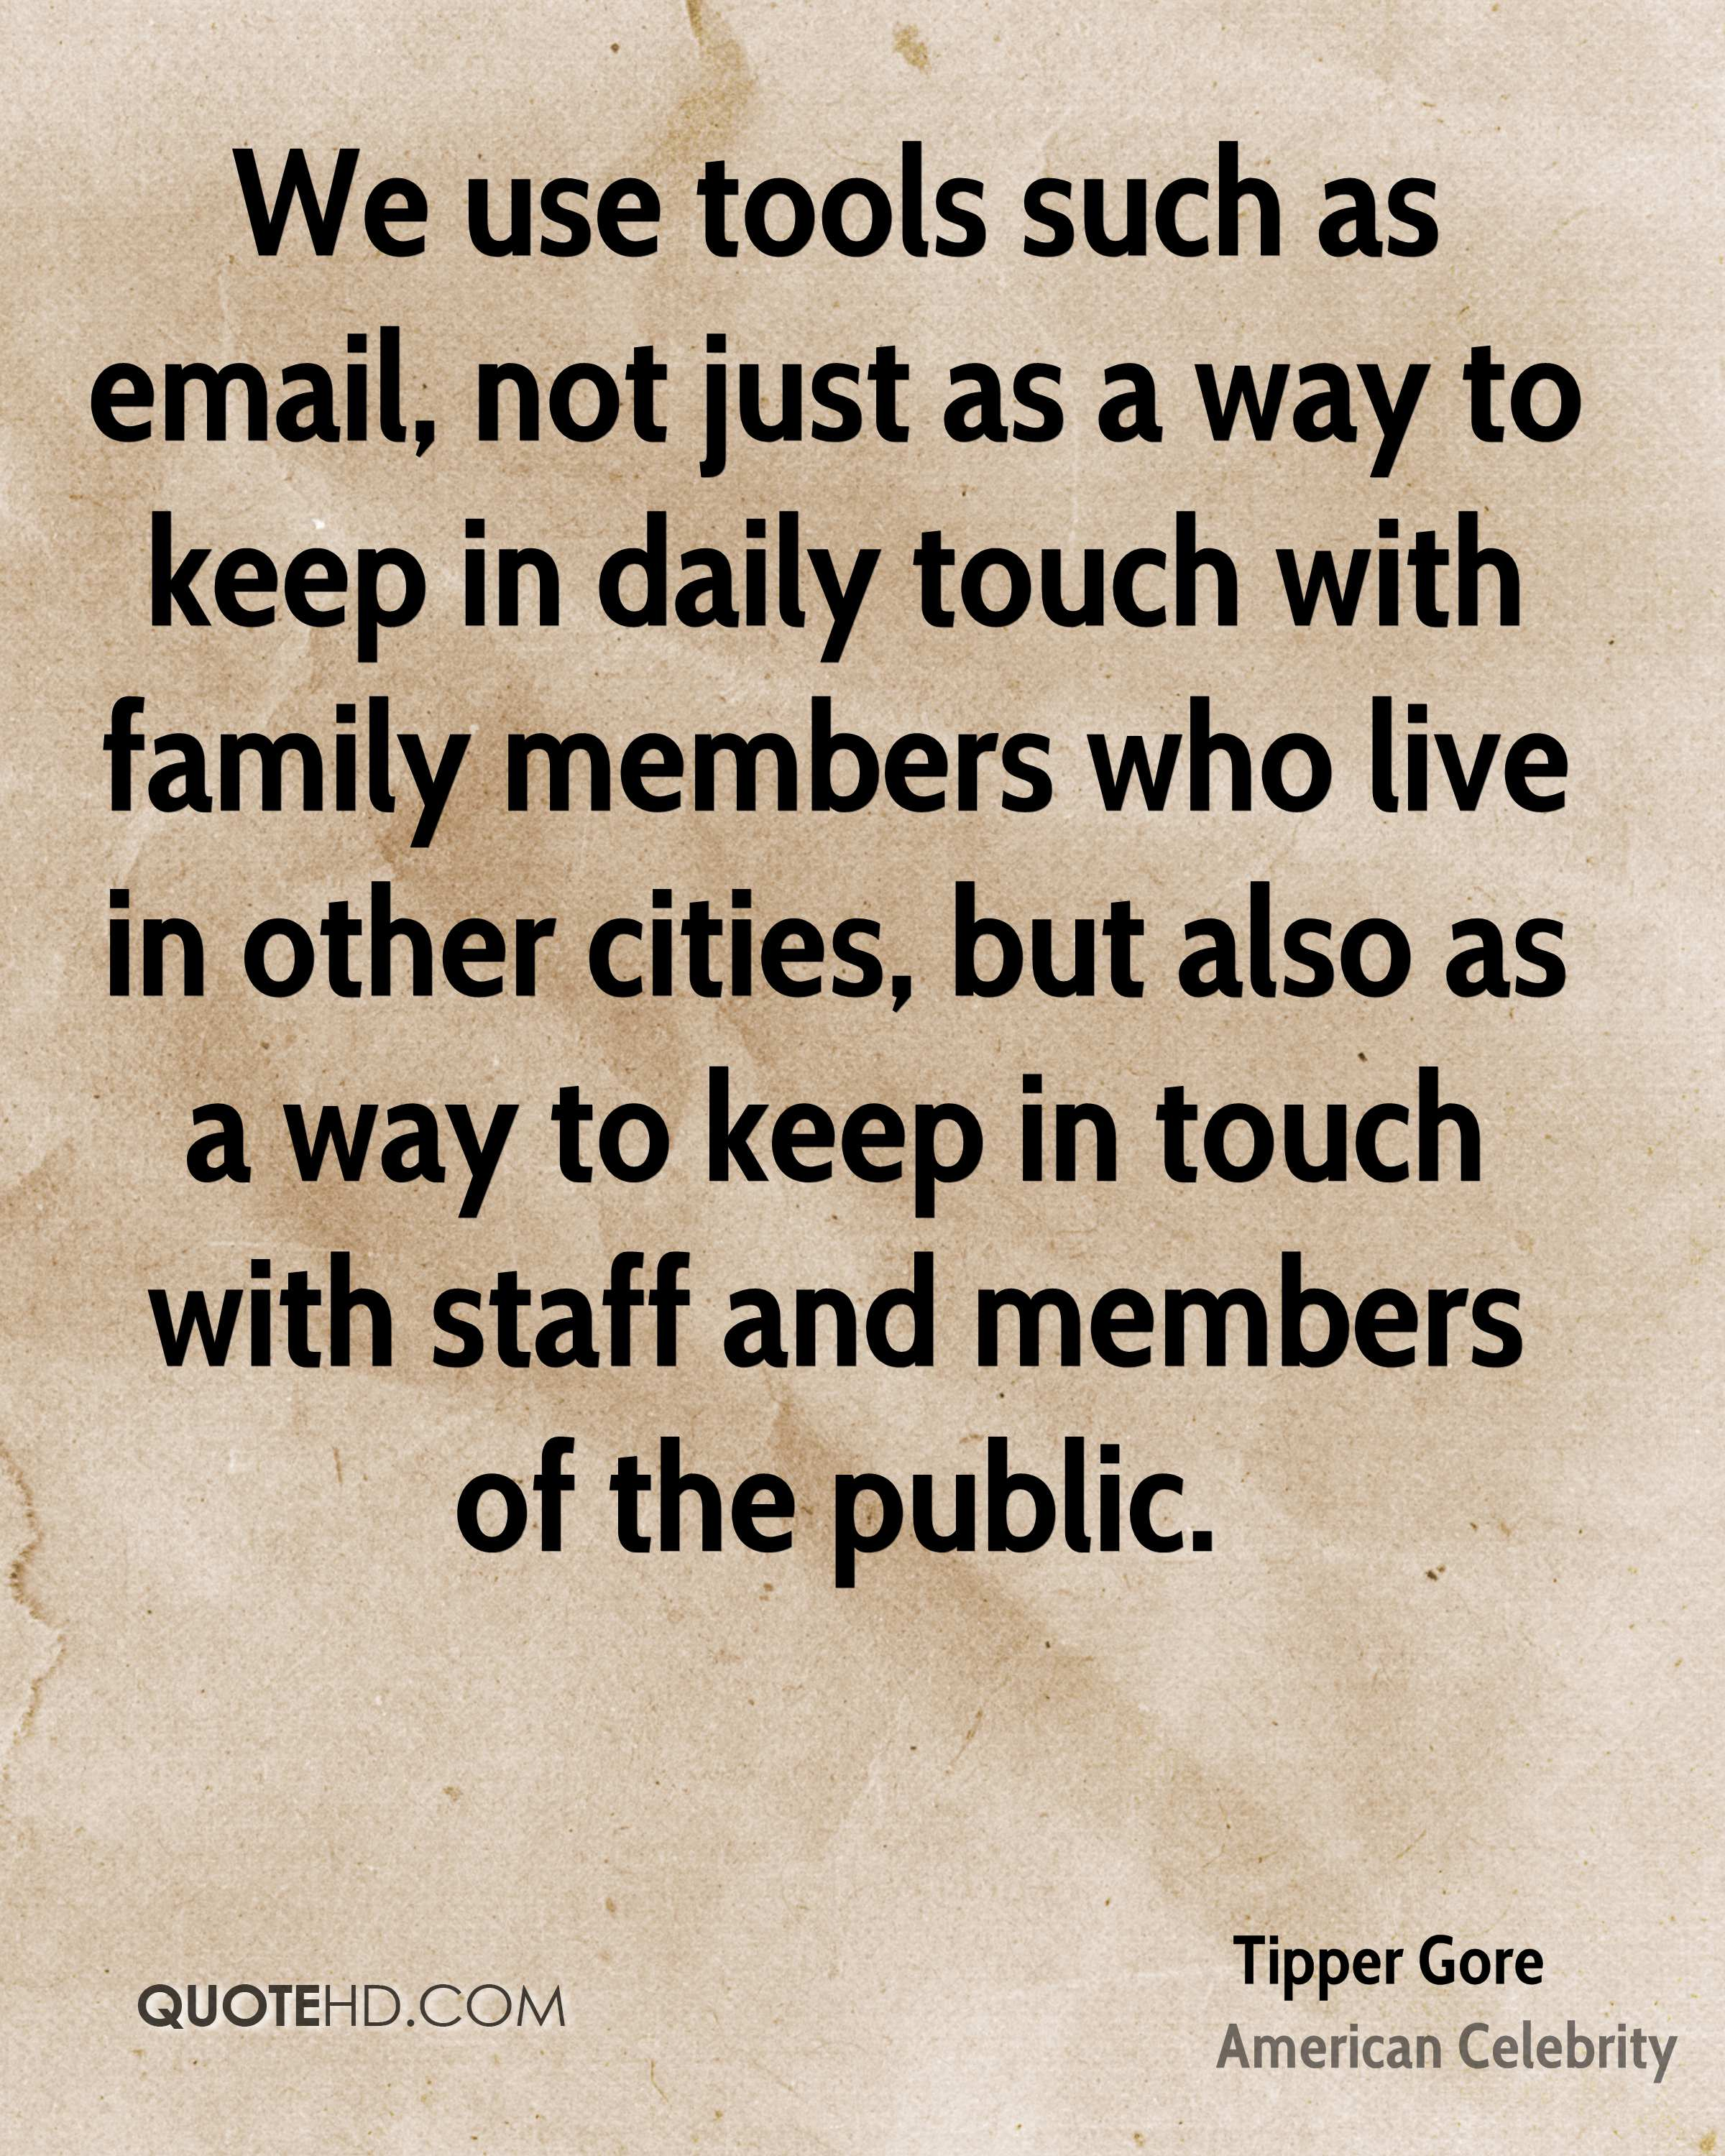 We use tools such as email, not just as a way to keep in daily touch with family members who live in other cities, but also as a way to keep in touch with staff and members of the public.